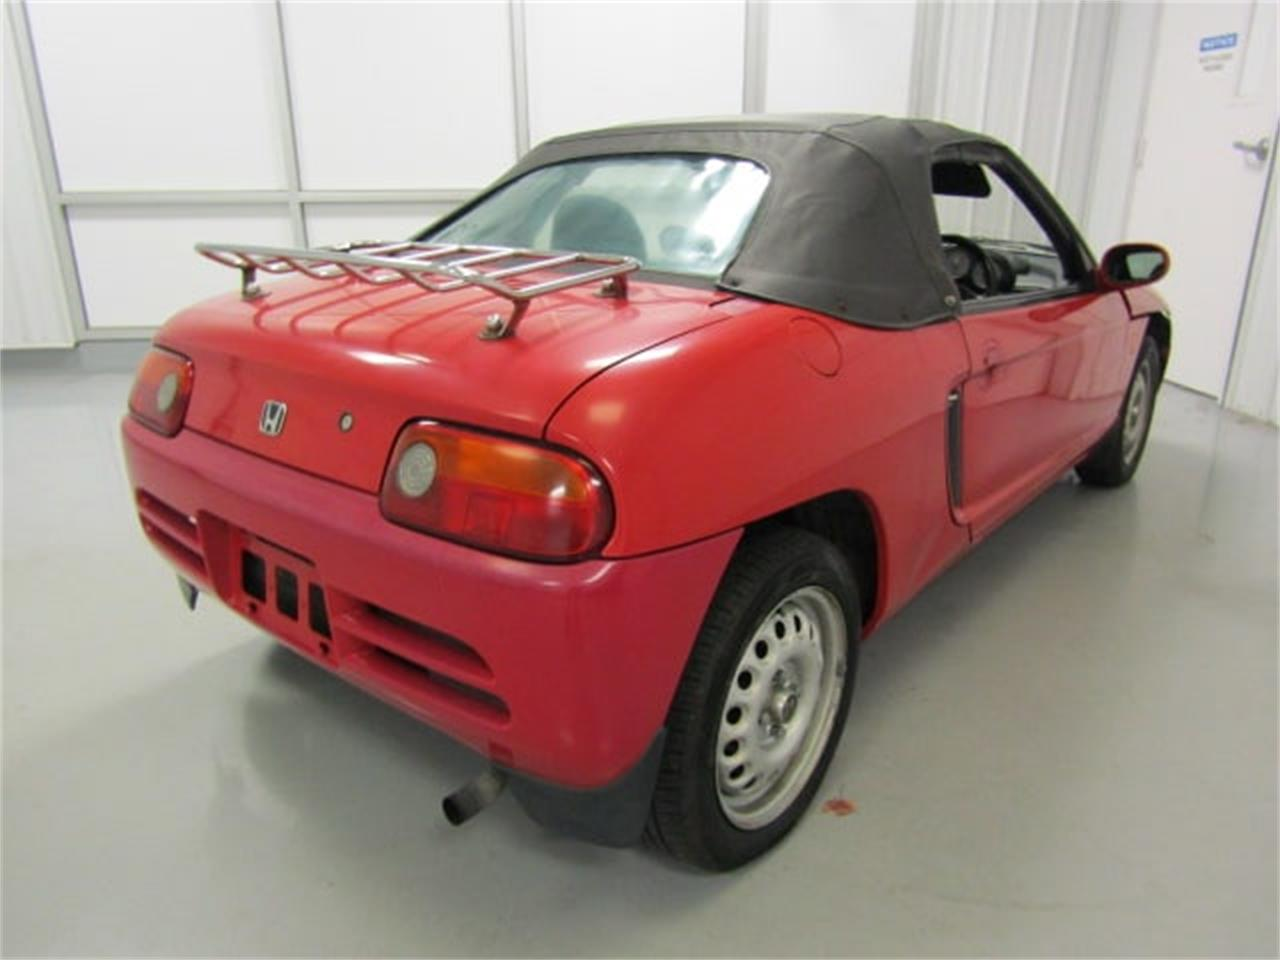 Large Picture of 1991 Honda Beat Offered by Duncan Imports & Classic Cars - JL71